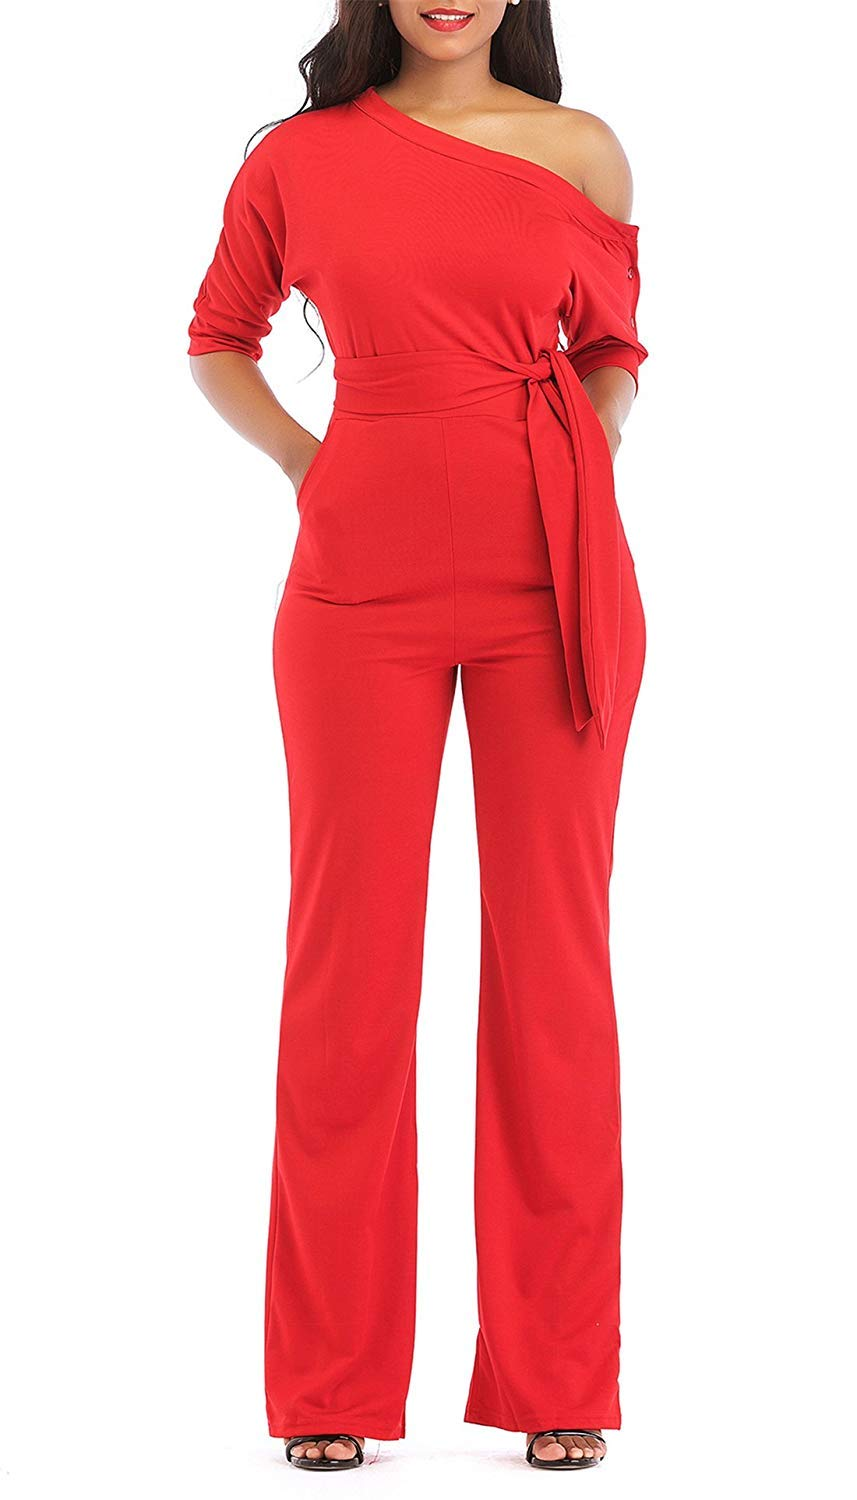 Great Pantsuit For Any Event